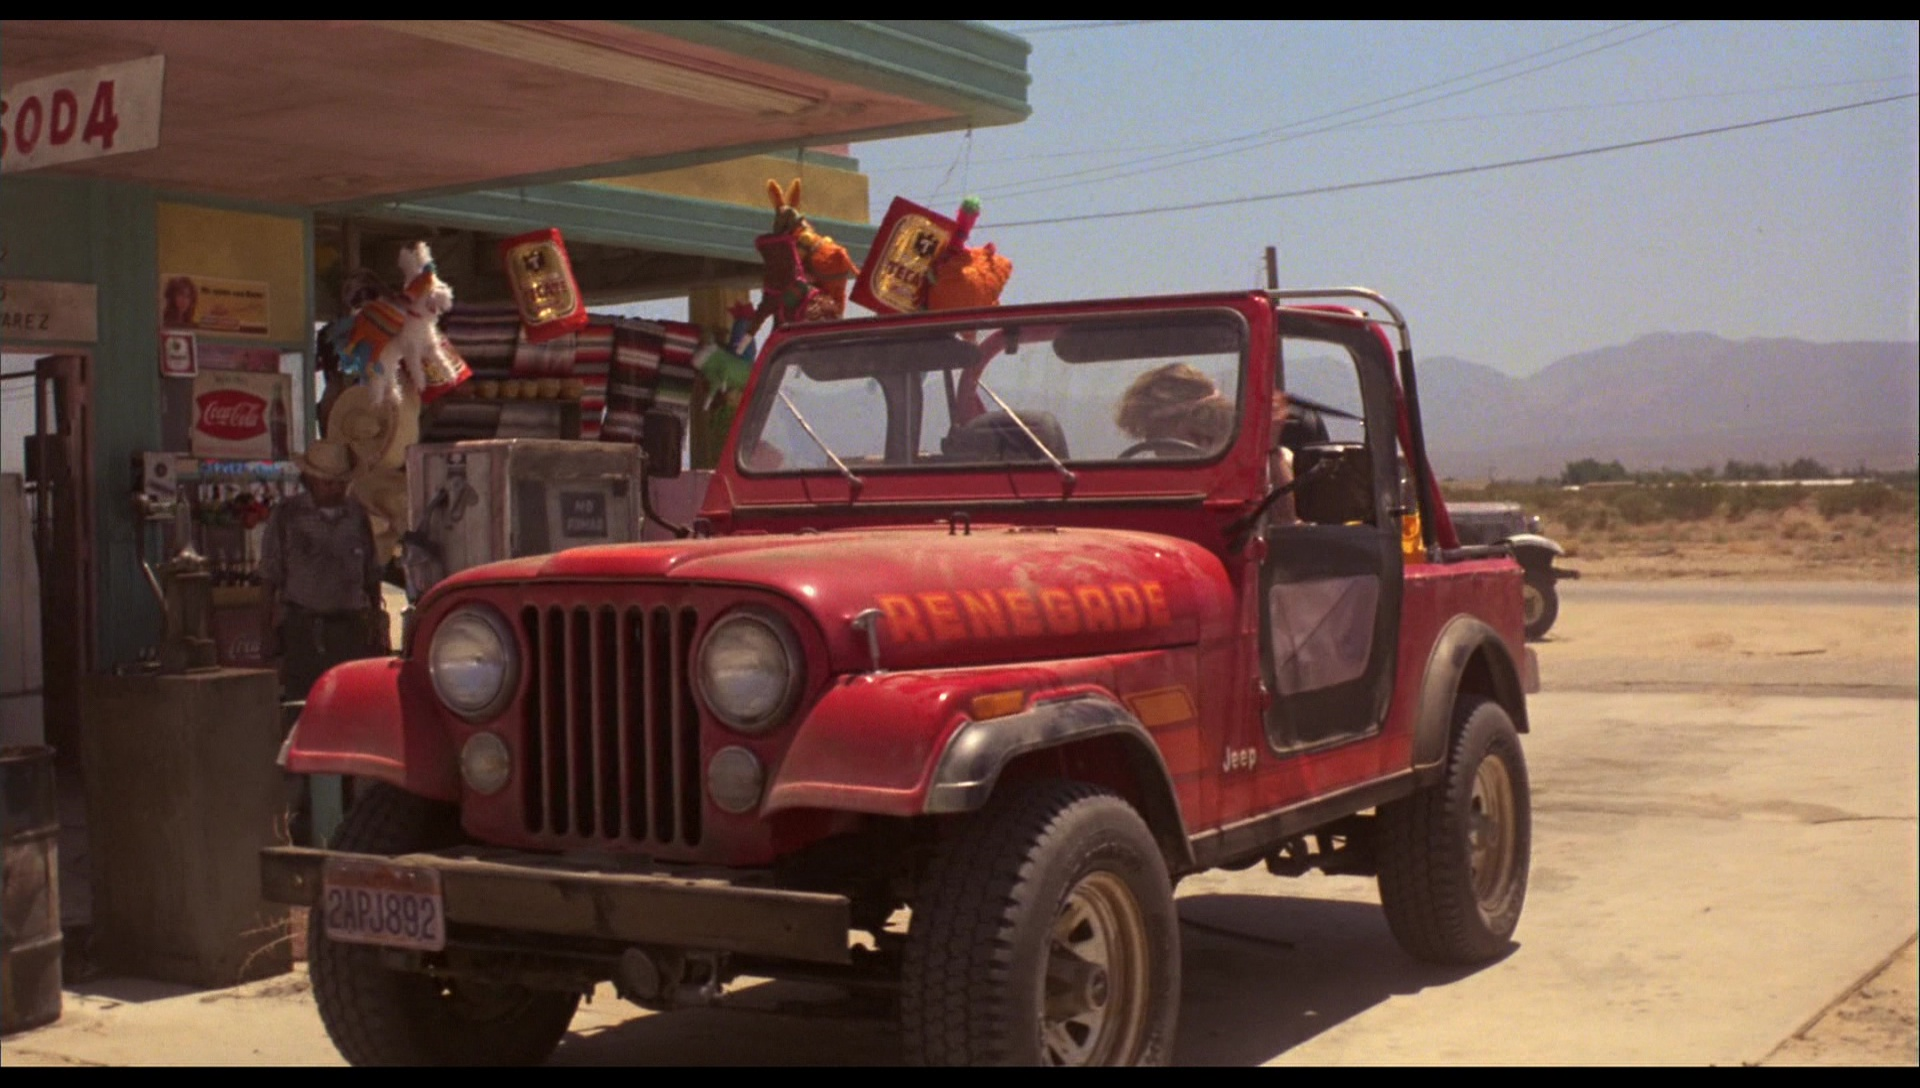 Tecate Beer And Coca Cola Signs And Jeep Cj 7 Suv Used By